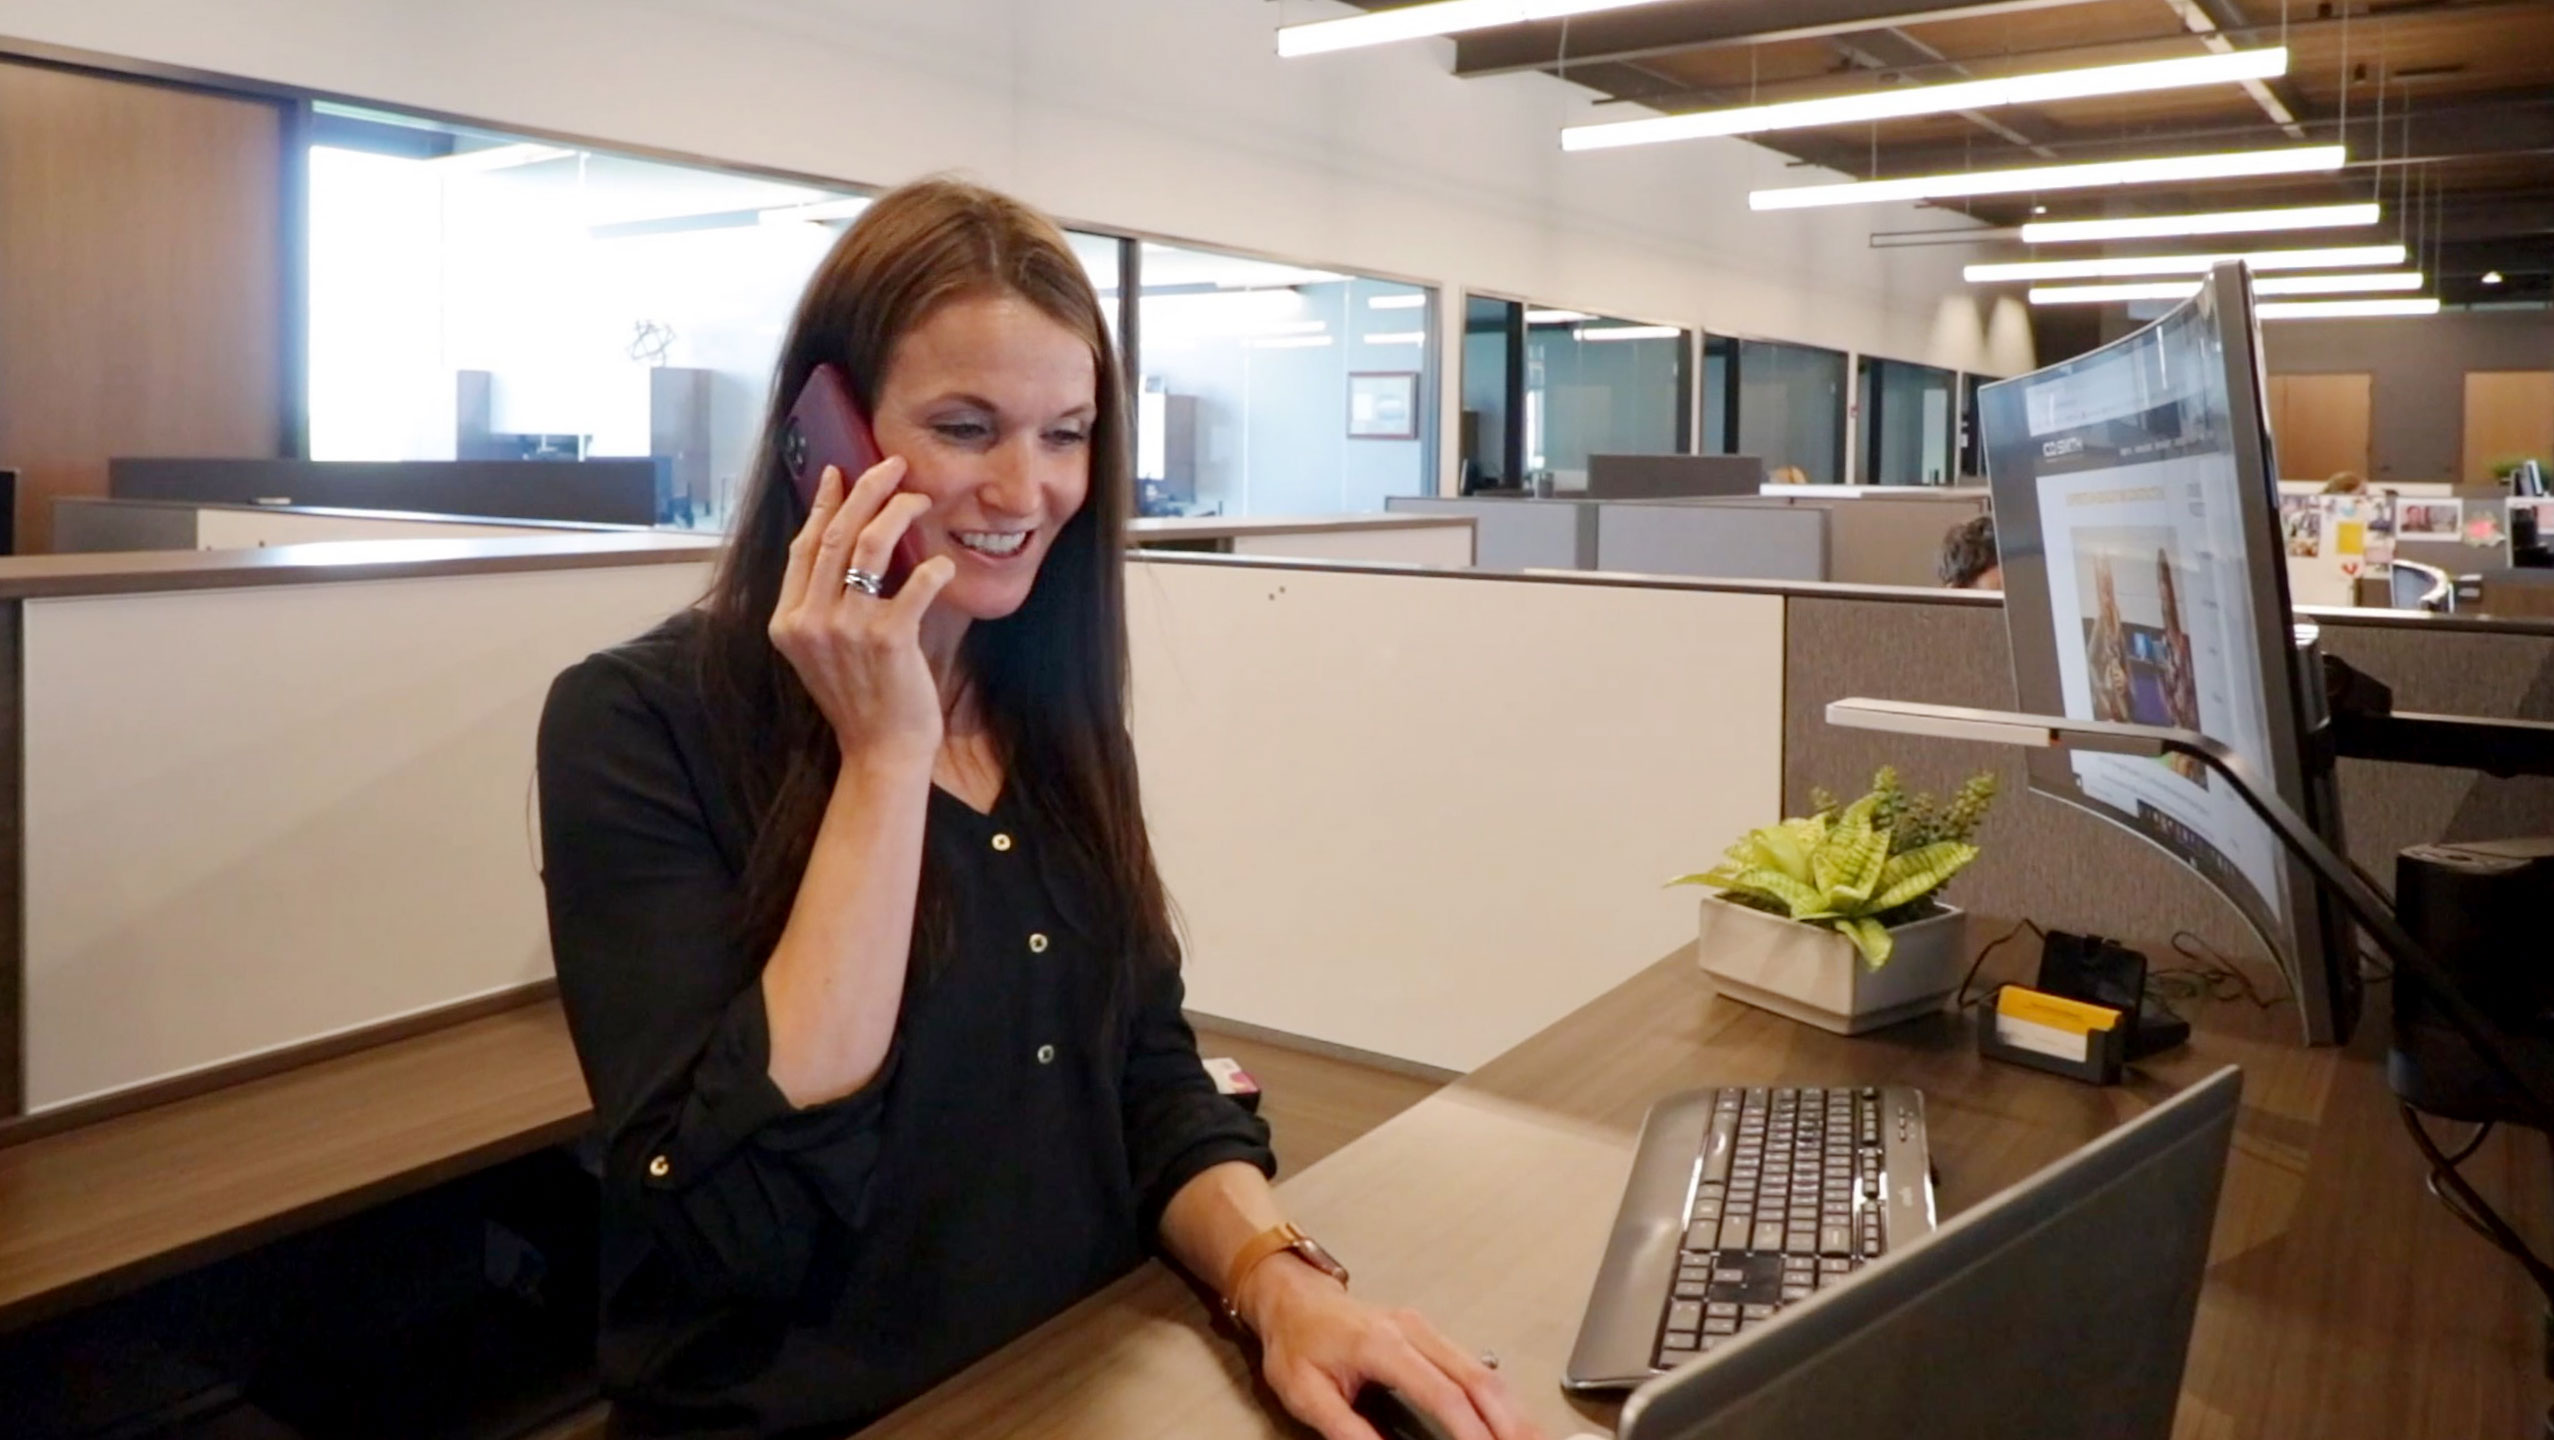 C.D. Smith Construction Director of Educational Markets Tricia Muellenbach on the phone